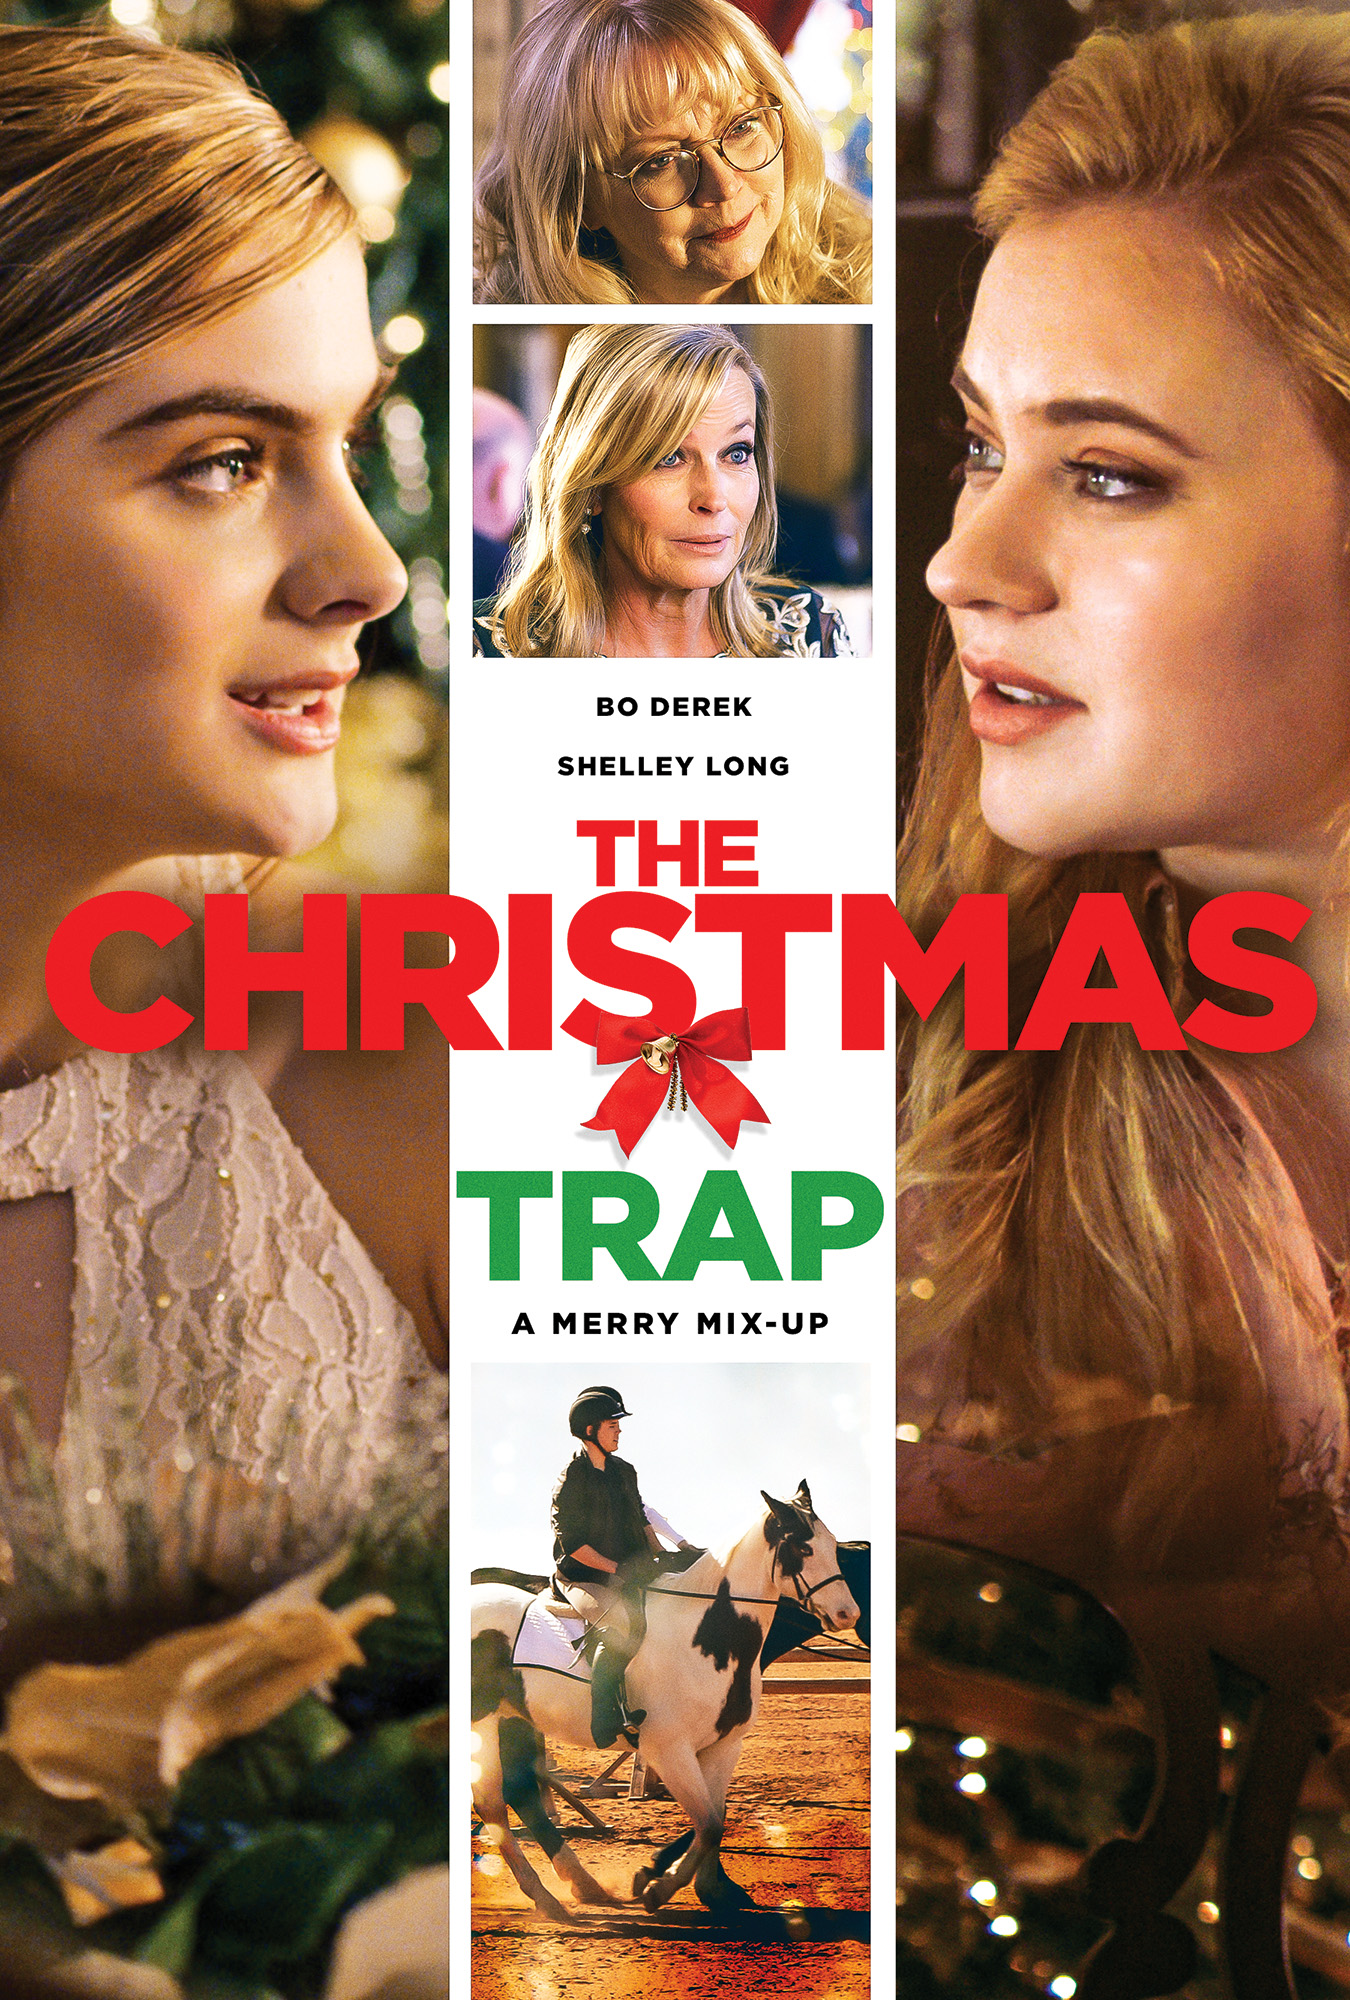 A Heartland Christmas.The Christmas Trap Movie Trailer Christmas In The Heartland